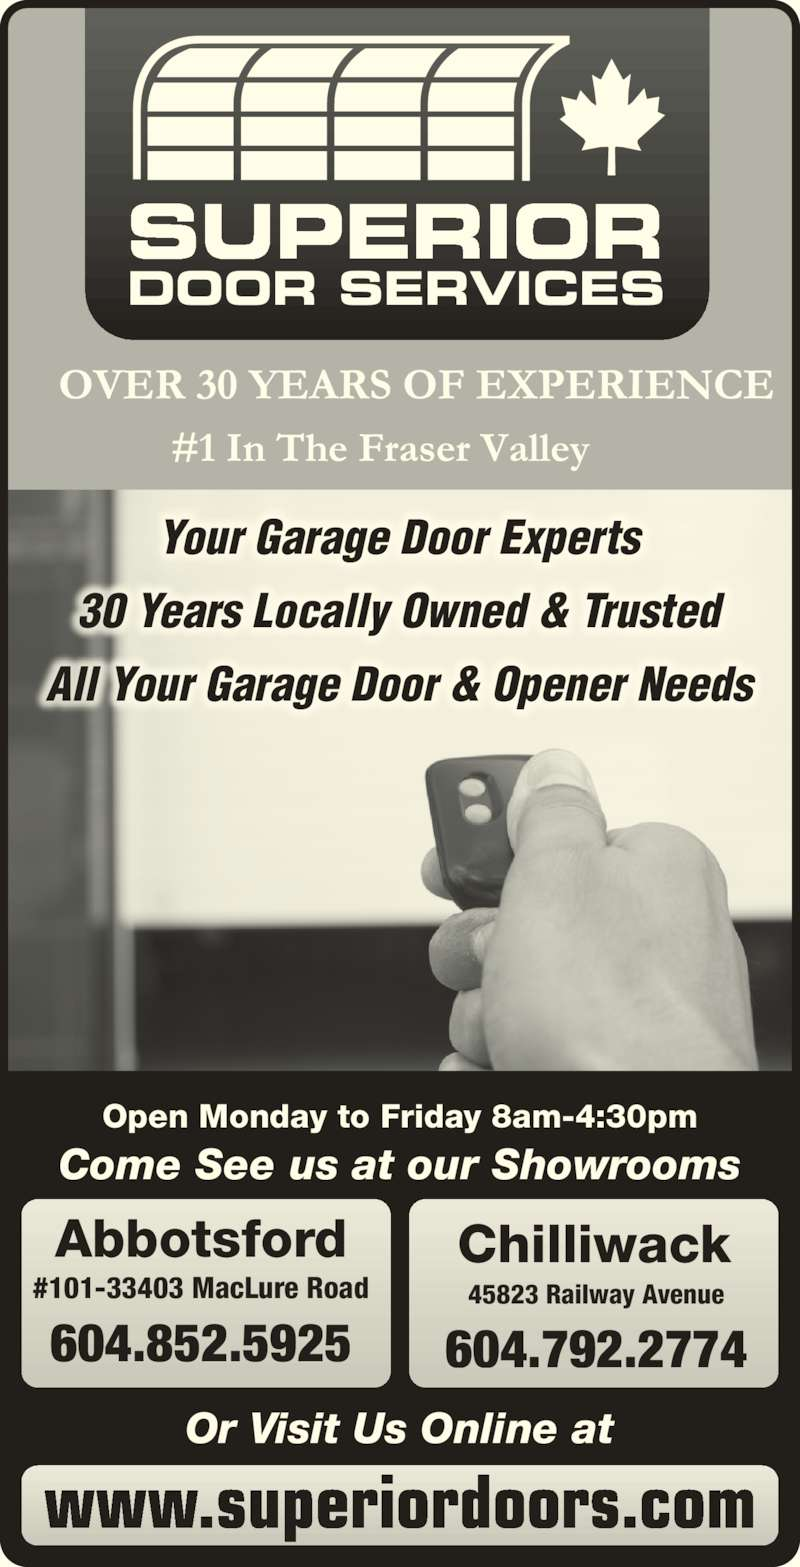 Superior Door Services (604-852-5925) - Display Ad - DOOR SERVICES Come See us at our Showrooms #101-33403 MacLure Road Abbotsford 604.852.5925 Your Garage Door Experts Chilliwack 604.792.2774 Open Monday to Friday 8am-4:30pm 45823 Railway Avenue www.superiordoors.com Or Visit Us Online at 30 Years Locally Owned & Trusted All Your Garage Door & Opener Needs SUPERIOR